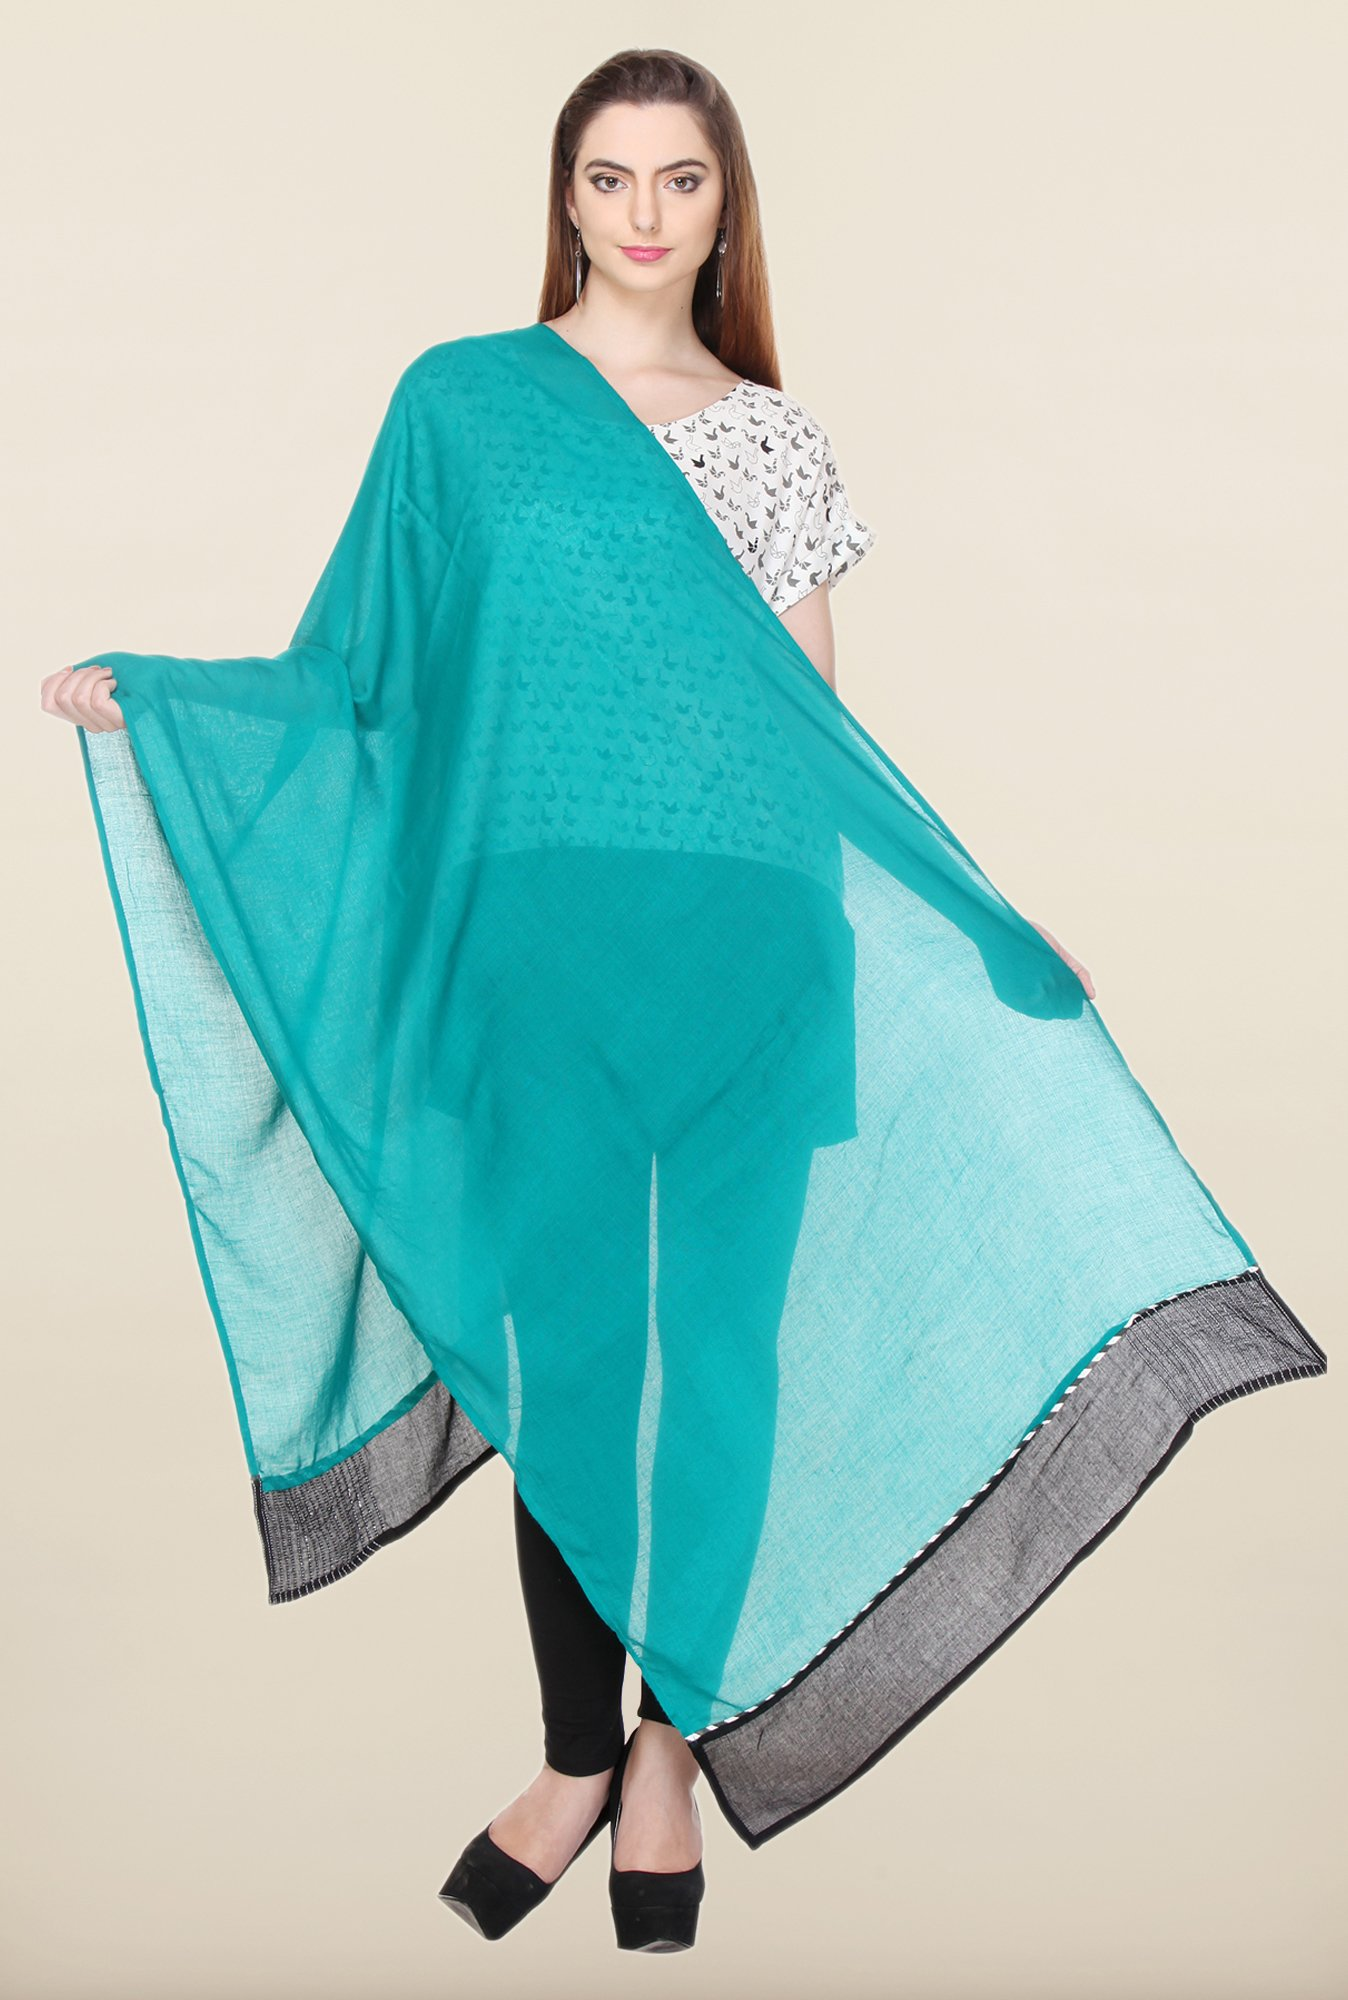 W Turquoise Solid Dupatta